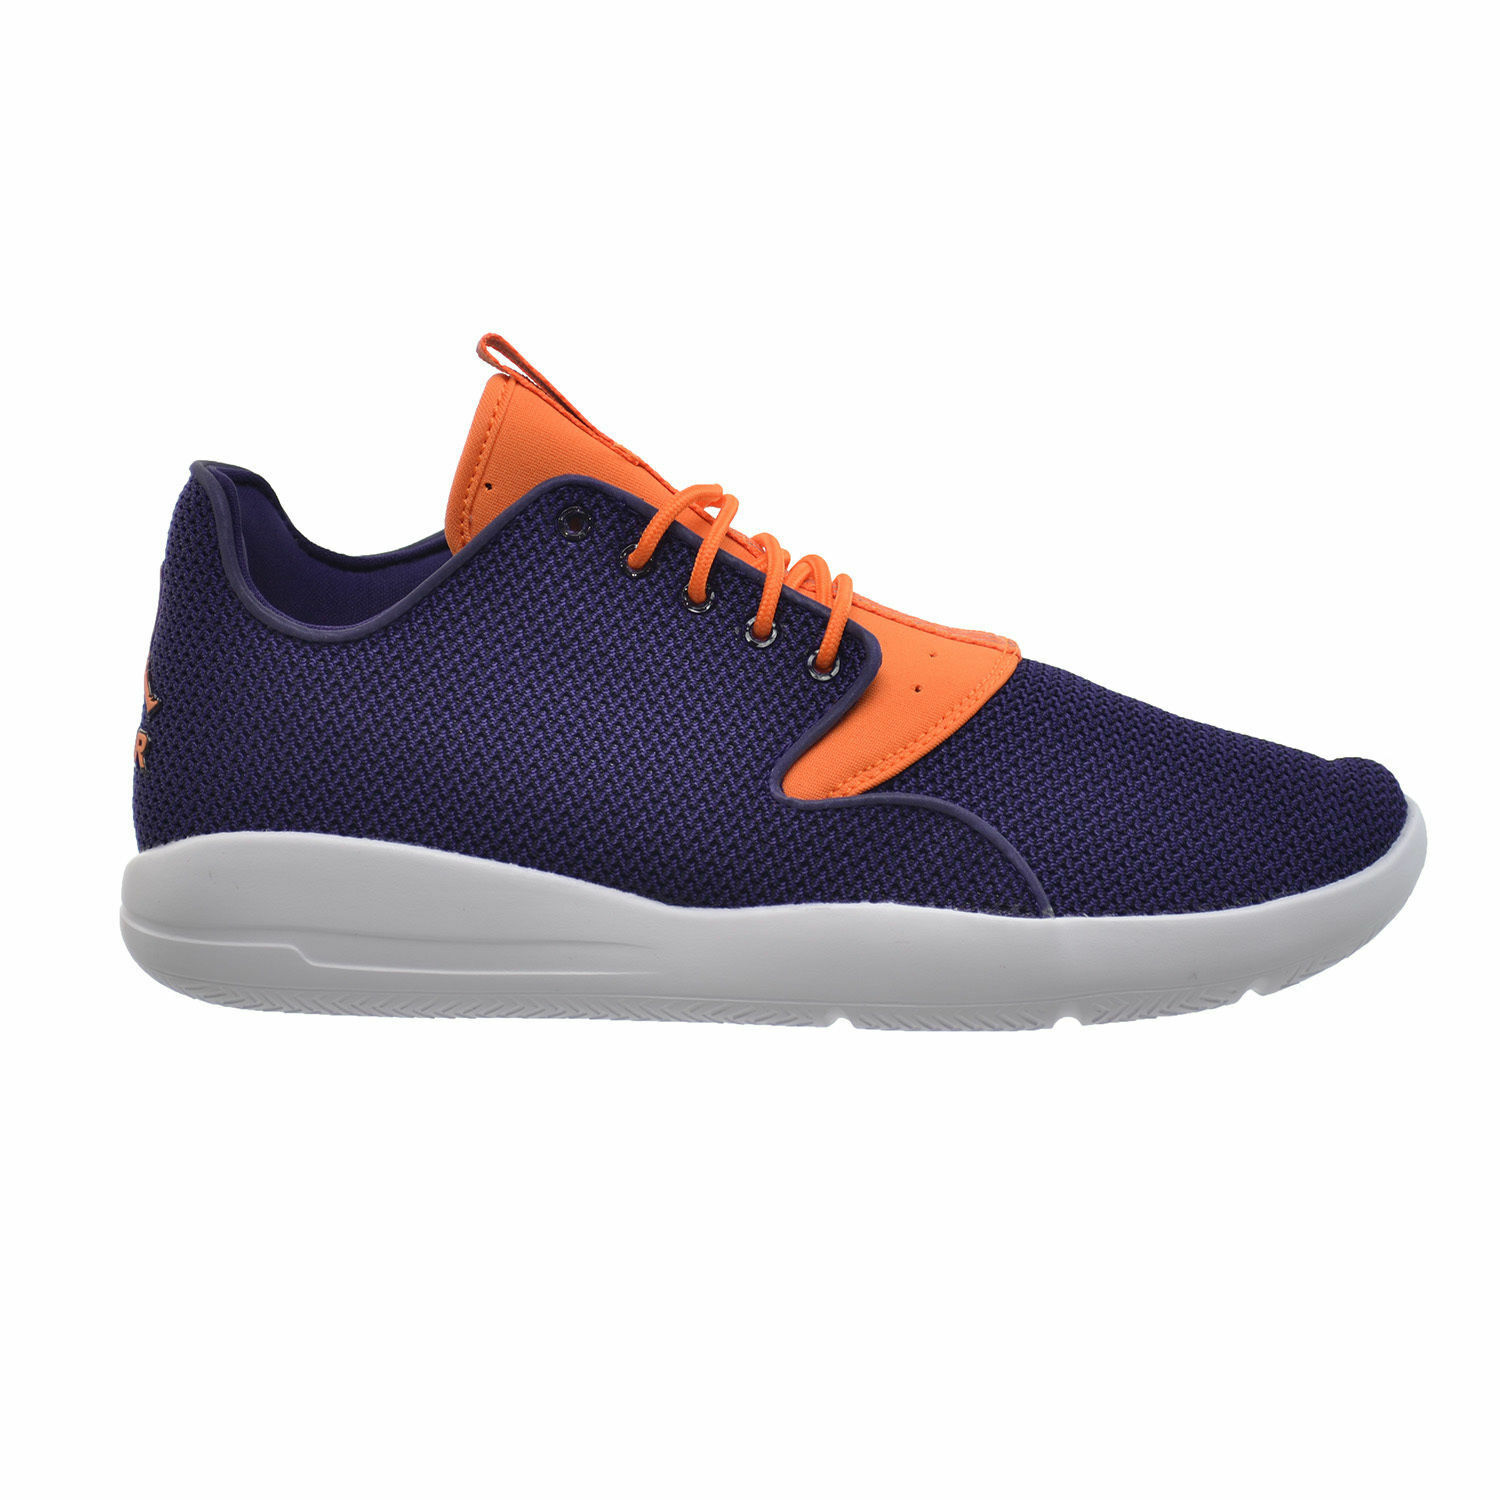 MEN'S NIKE JORDAN ECLIPSE SHOES SIZE 11.5 ink mandarin black white 724010 505 The most popular shoes for men and women